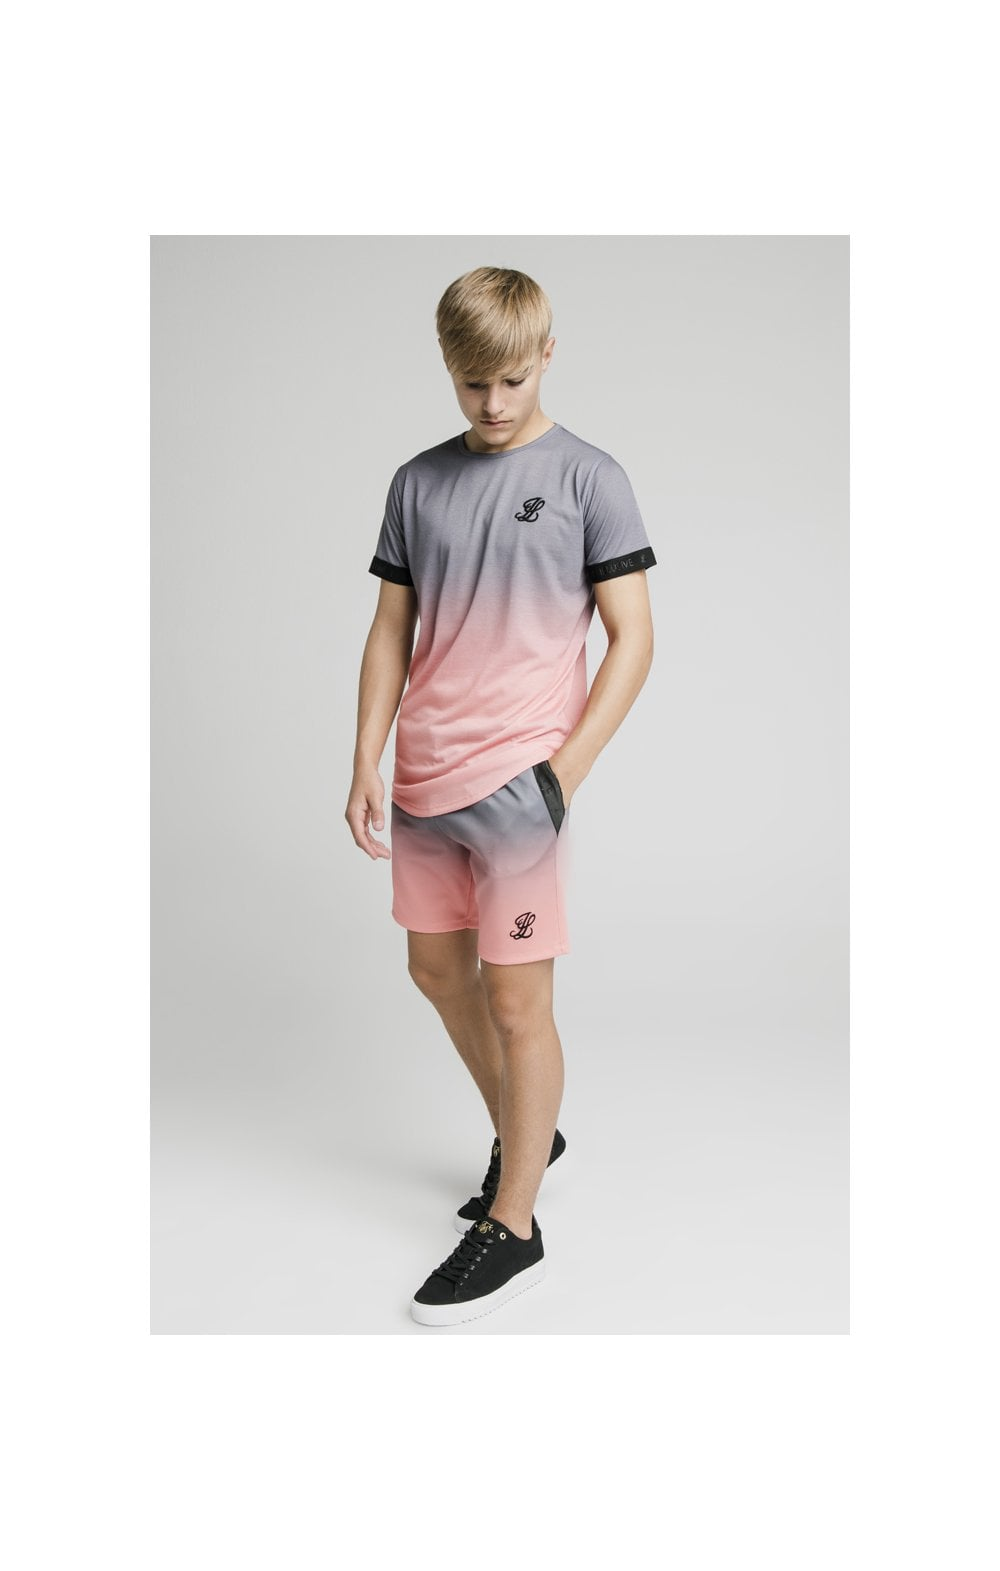 Load image into Gallery viewer, Illusive London Fade Tech Tee - Grey & Peach (7)